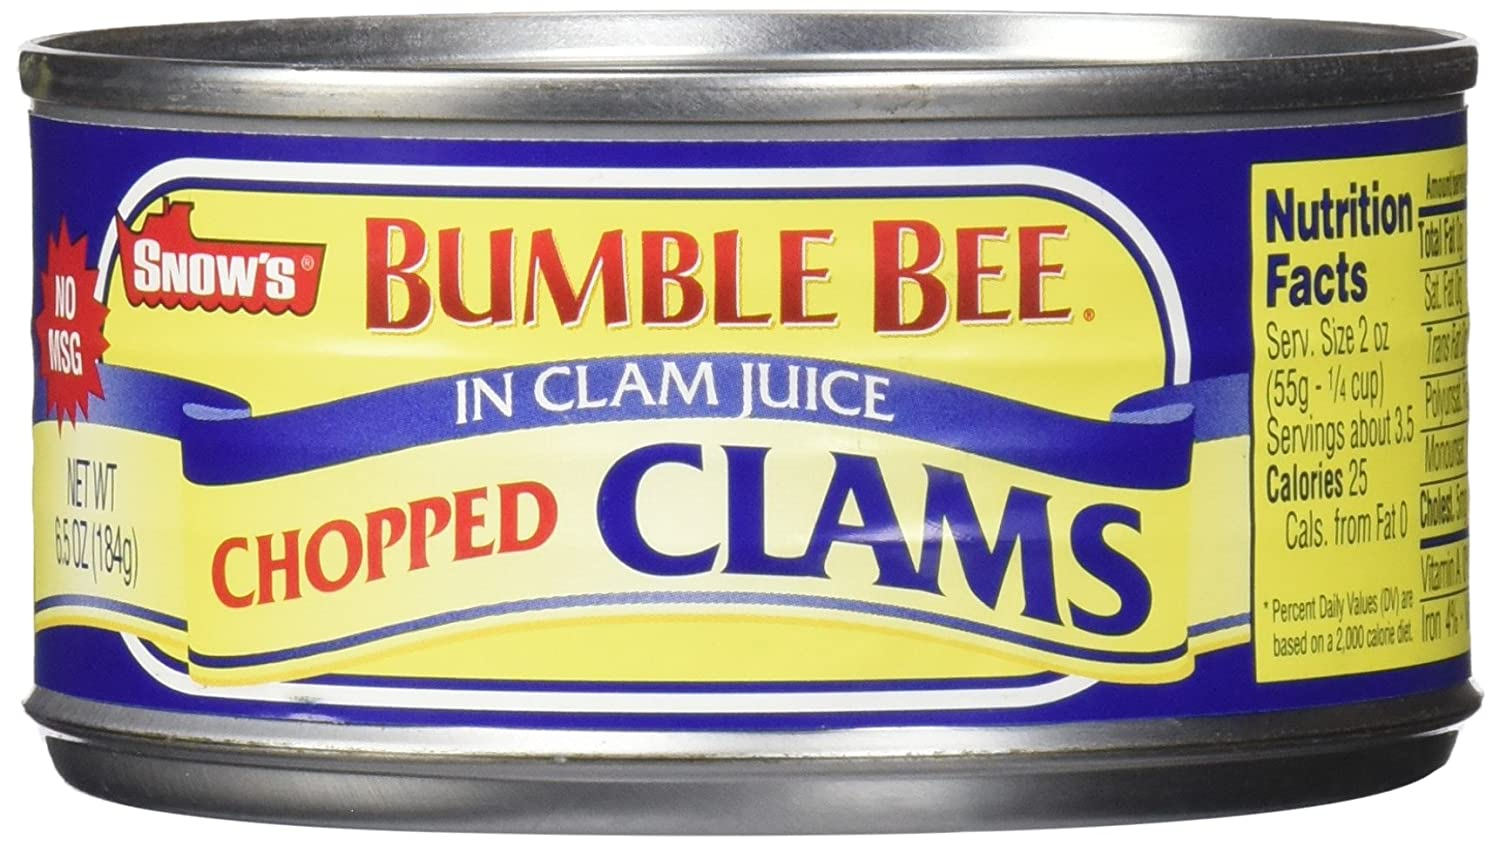 B004ZKXLXO Snow's by Bumble Bee Chopped Clams Juice, 6 Count 81572xO2BTOL